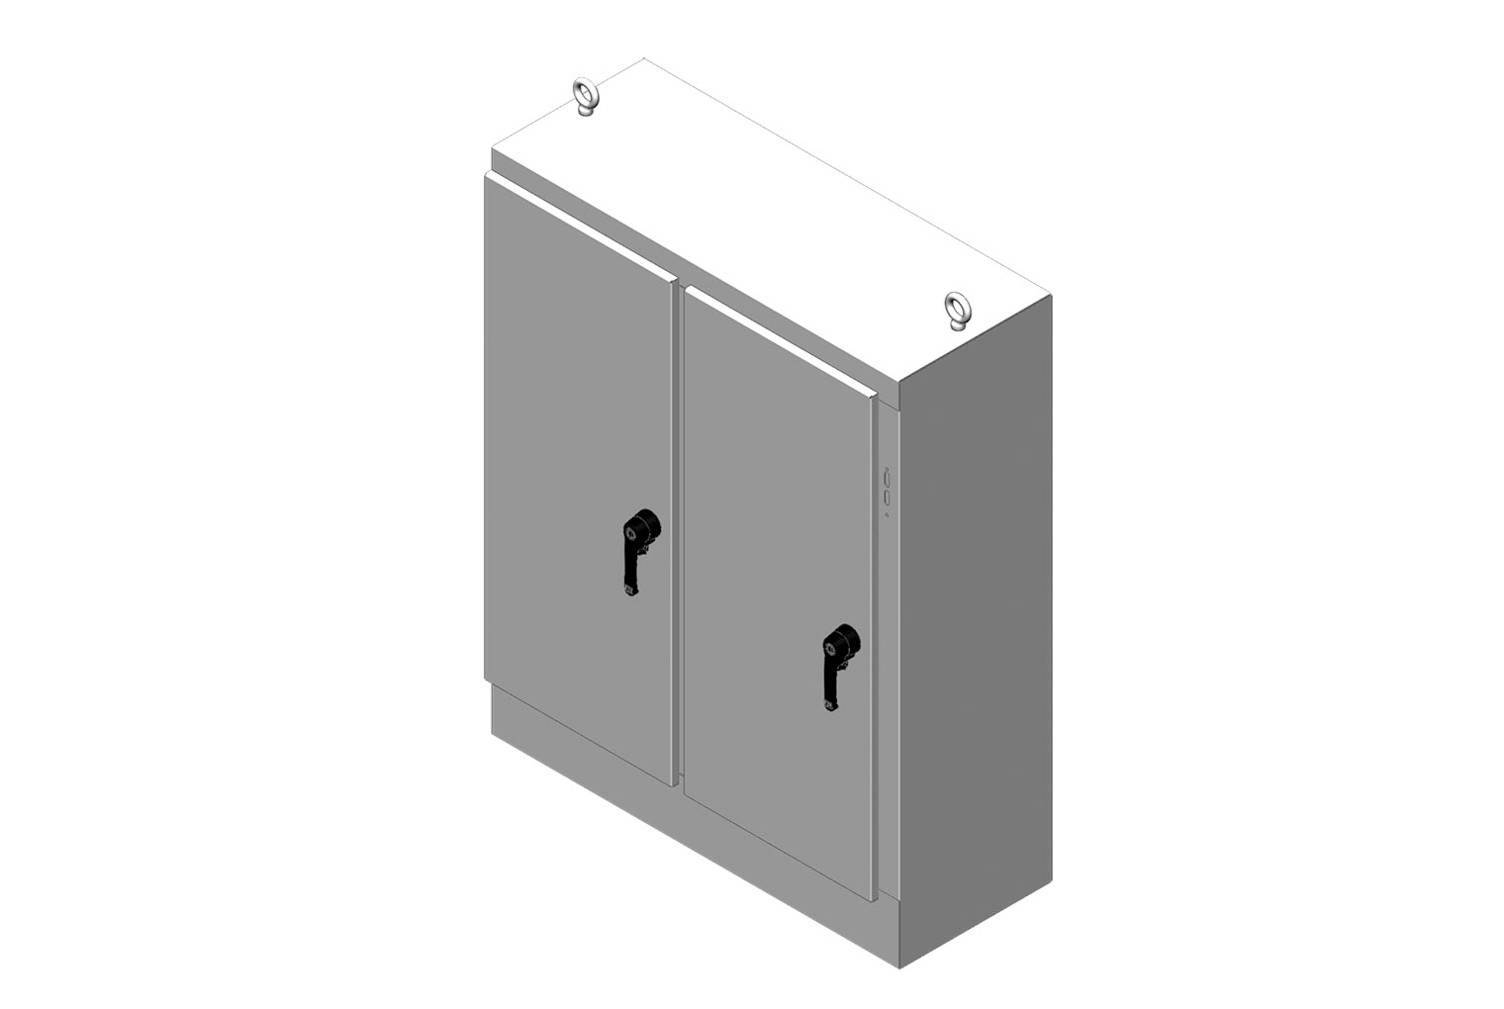 RMR Free-Standing Disconnect Enclosure, Type 4, with Solid Double Door Image